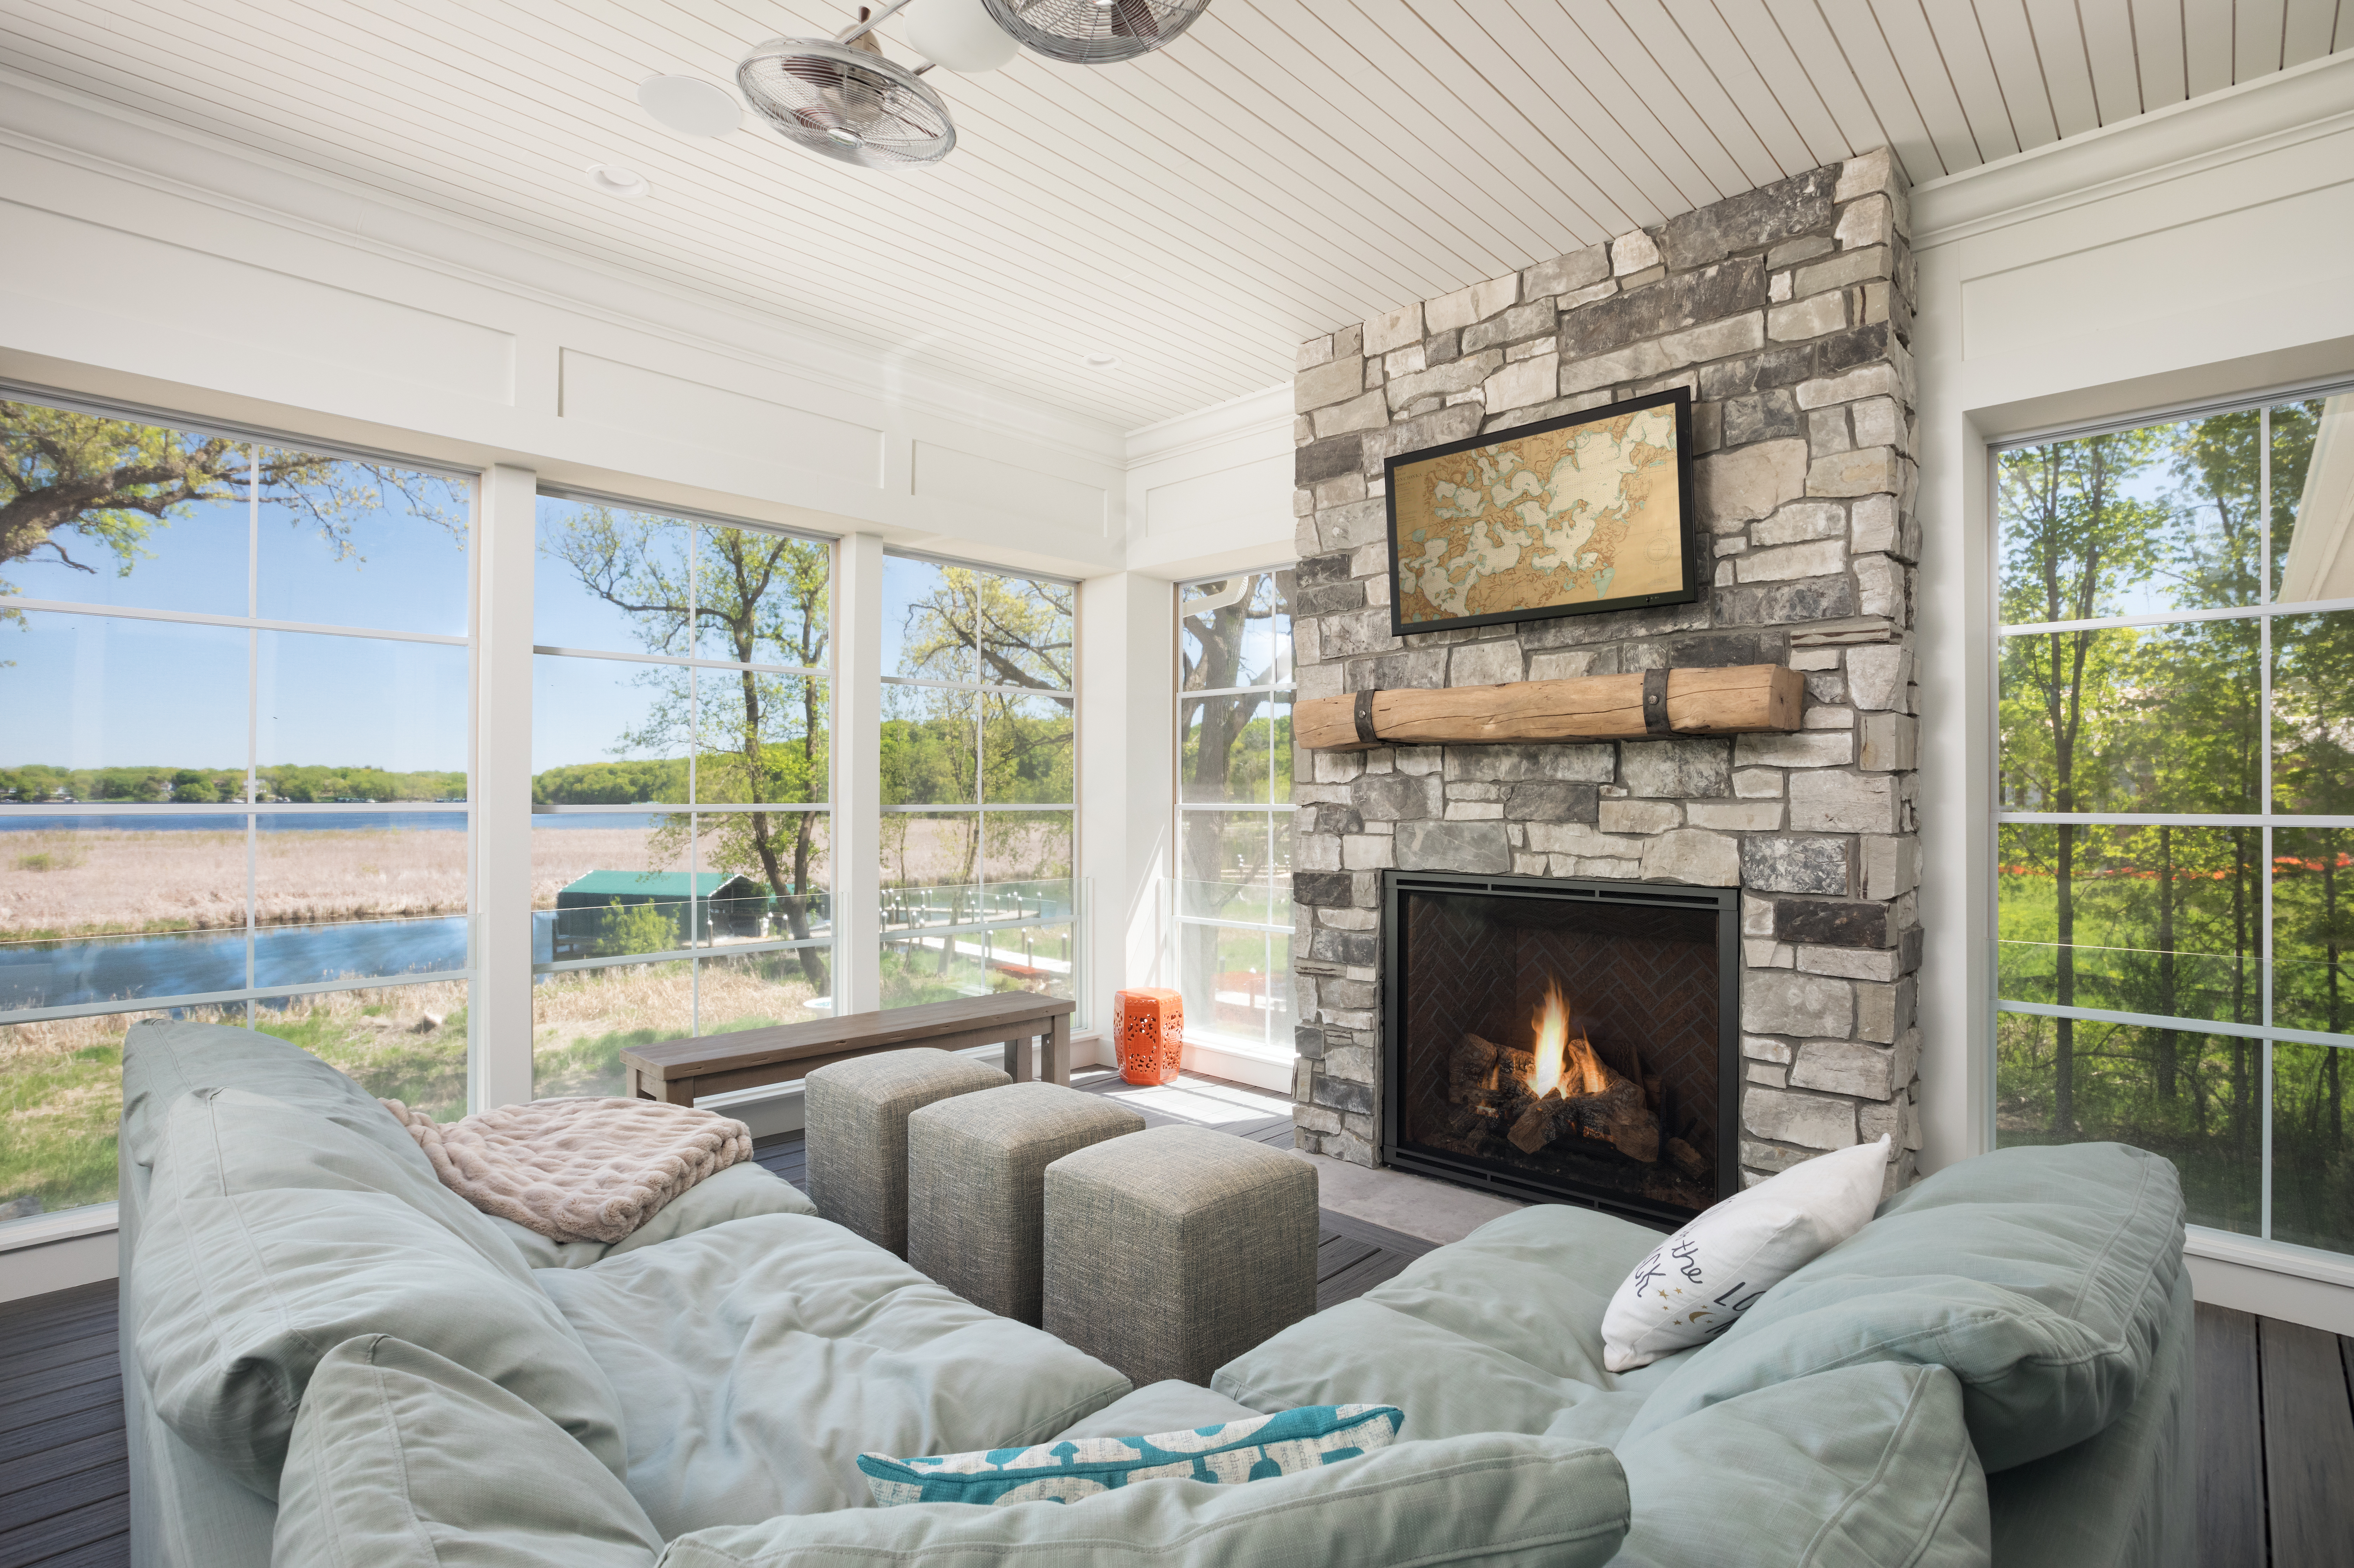 Porch with Lake Minnetonka visible through window